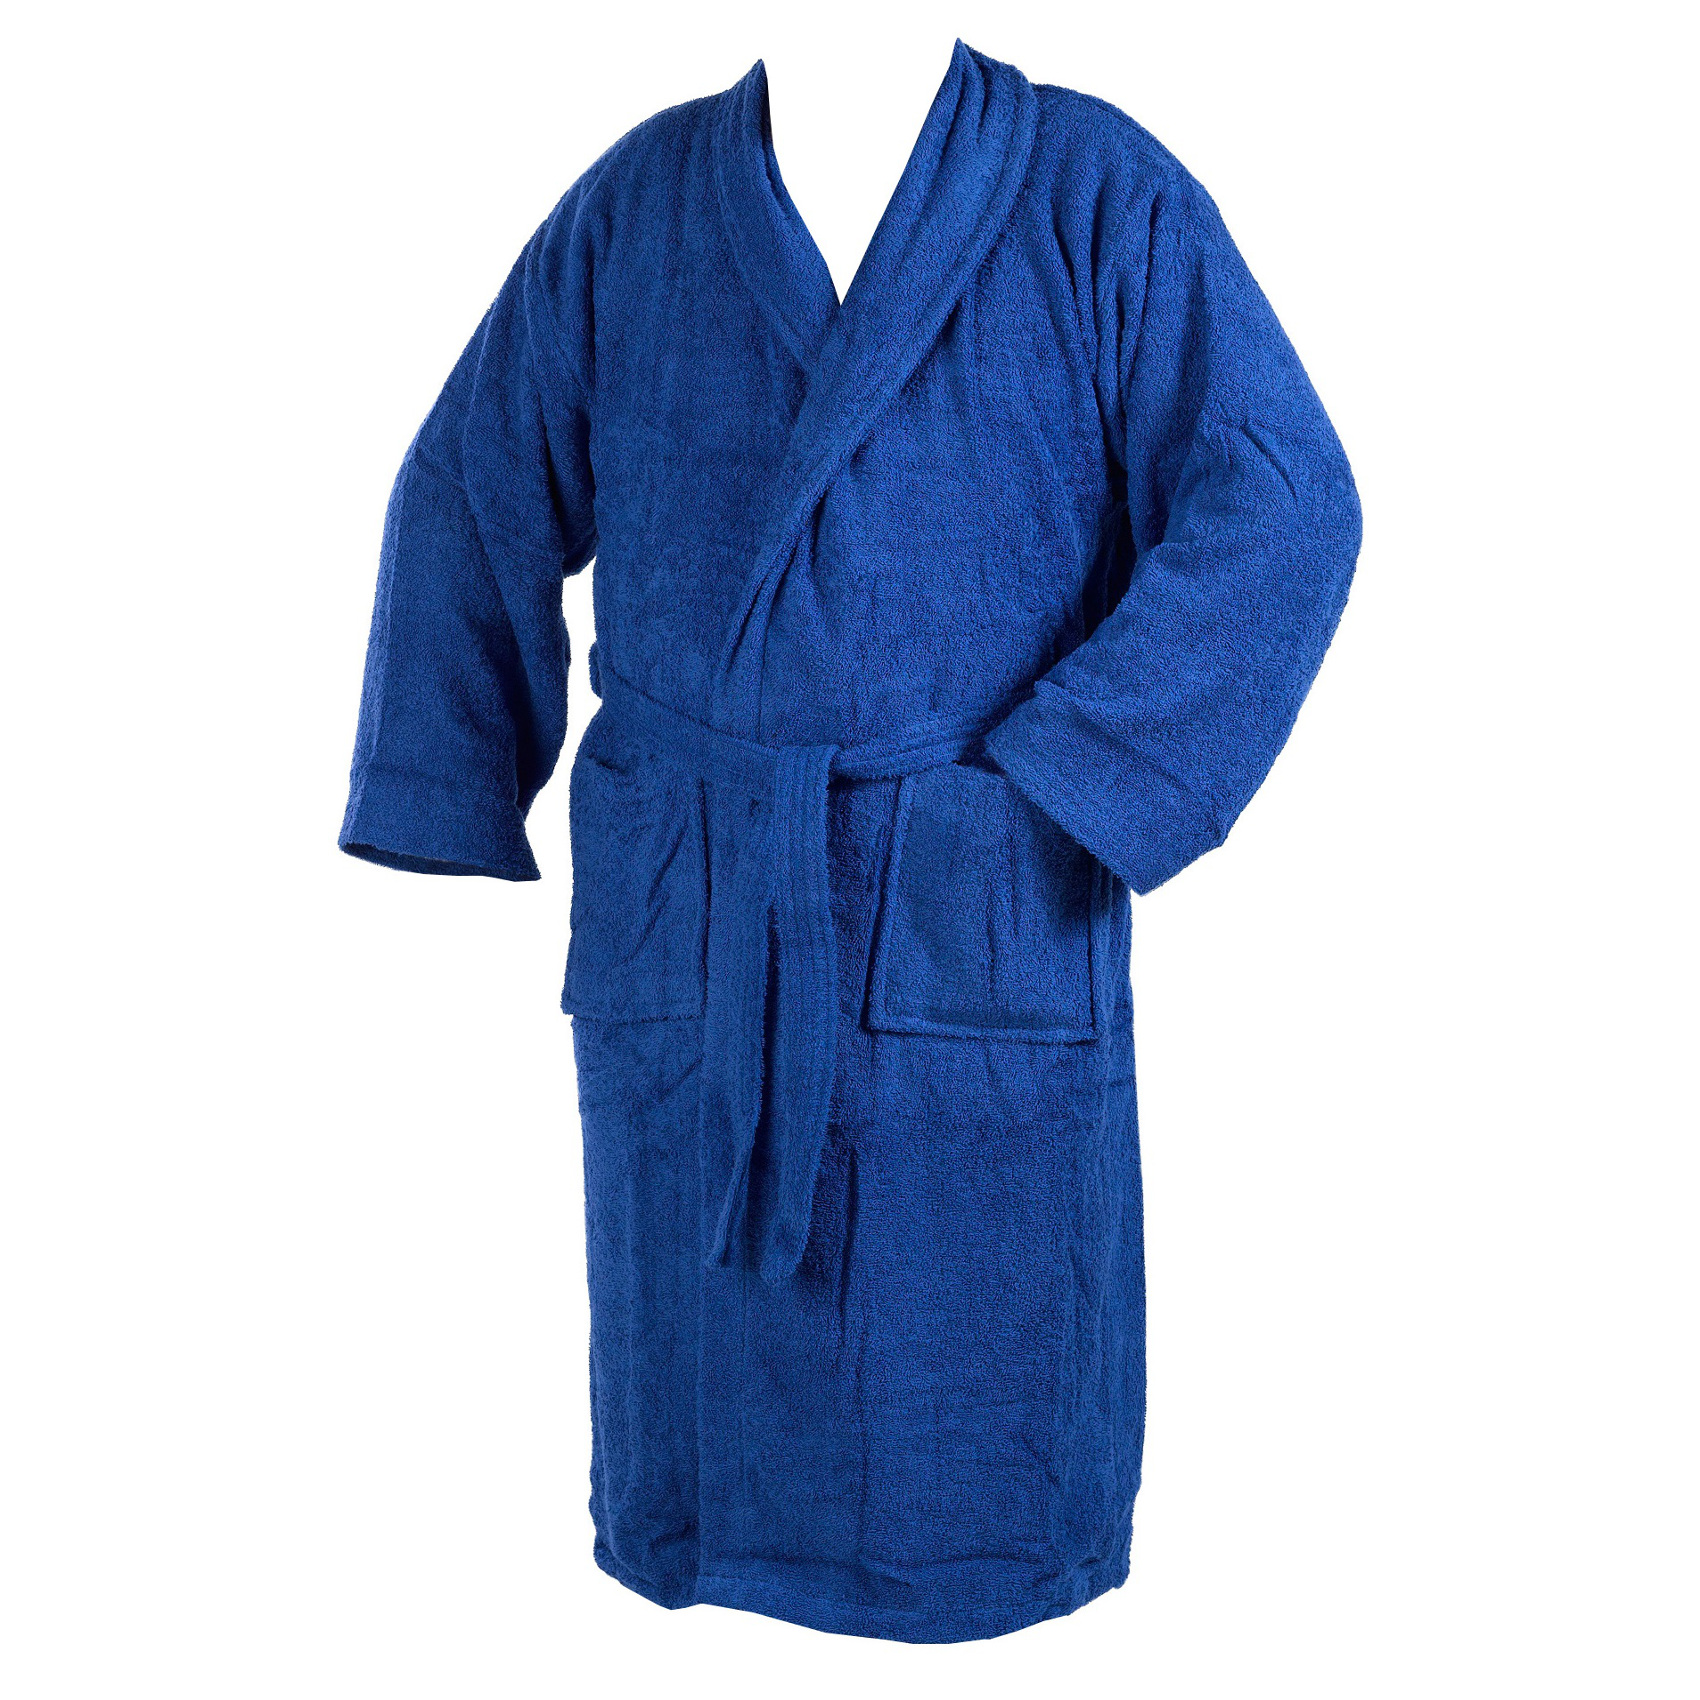 Soft Terry Towelling Bath Robe 100% Cotton Wrap Around Dressing Gown ...